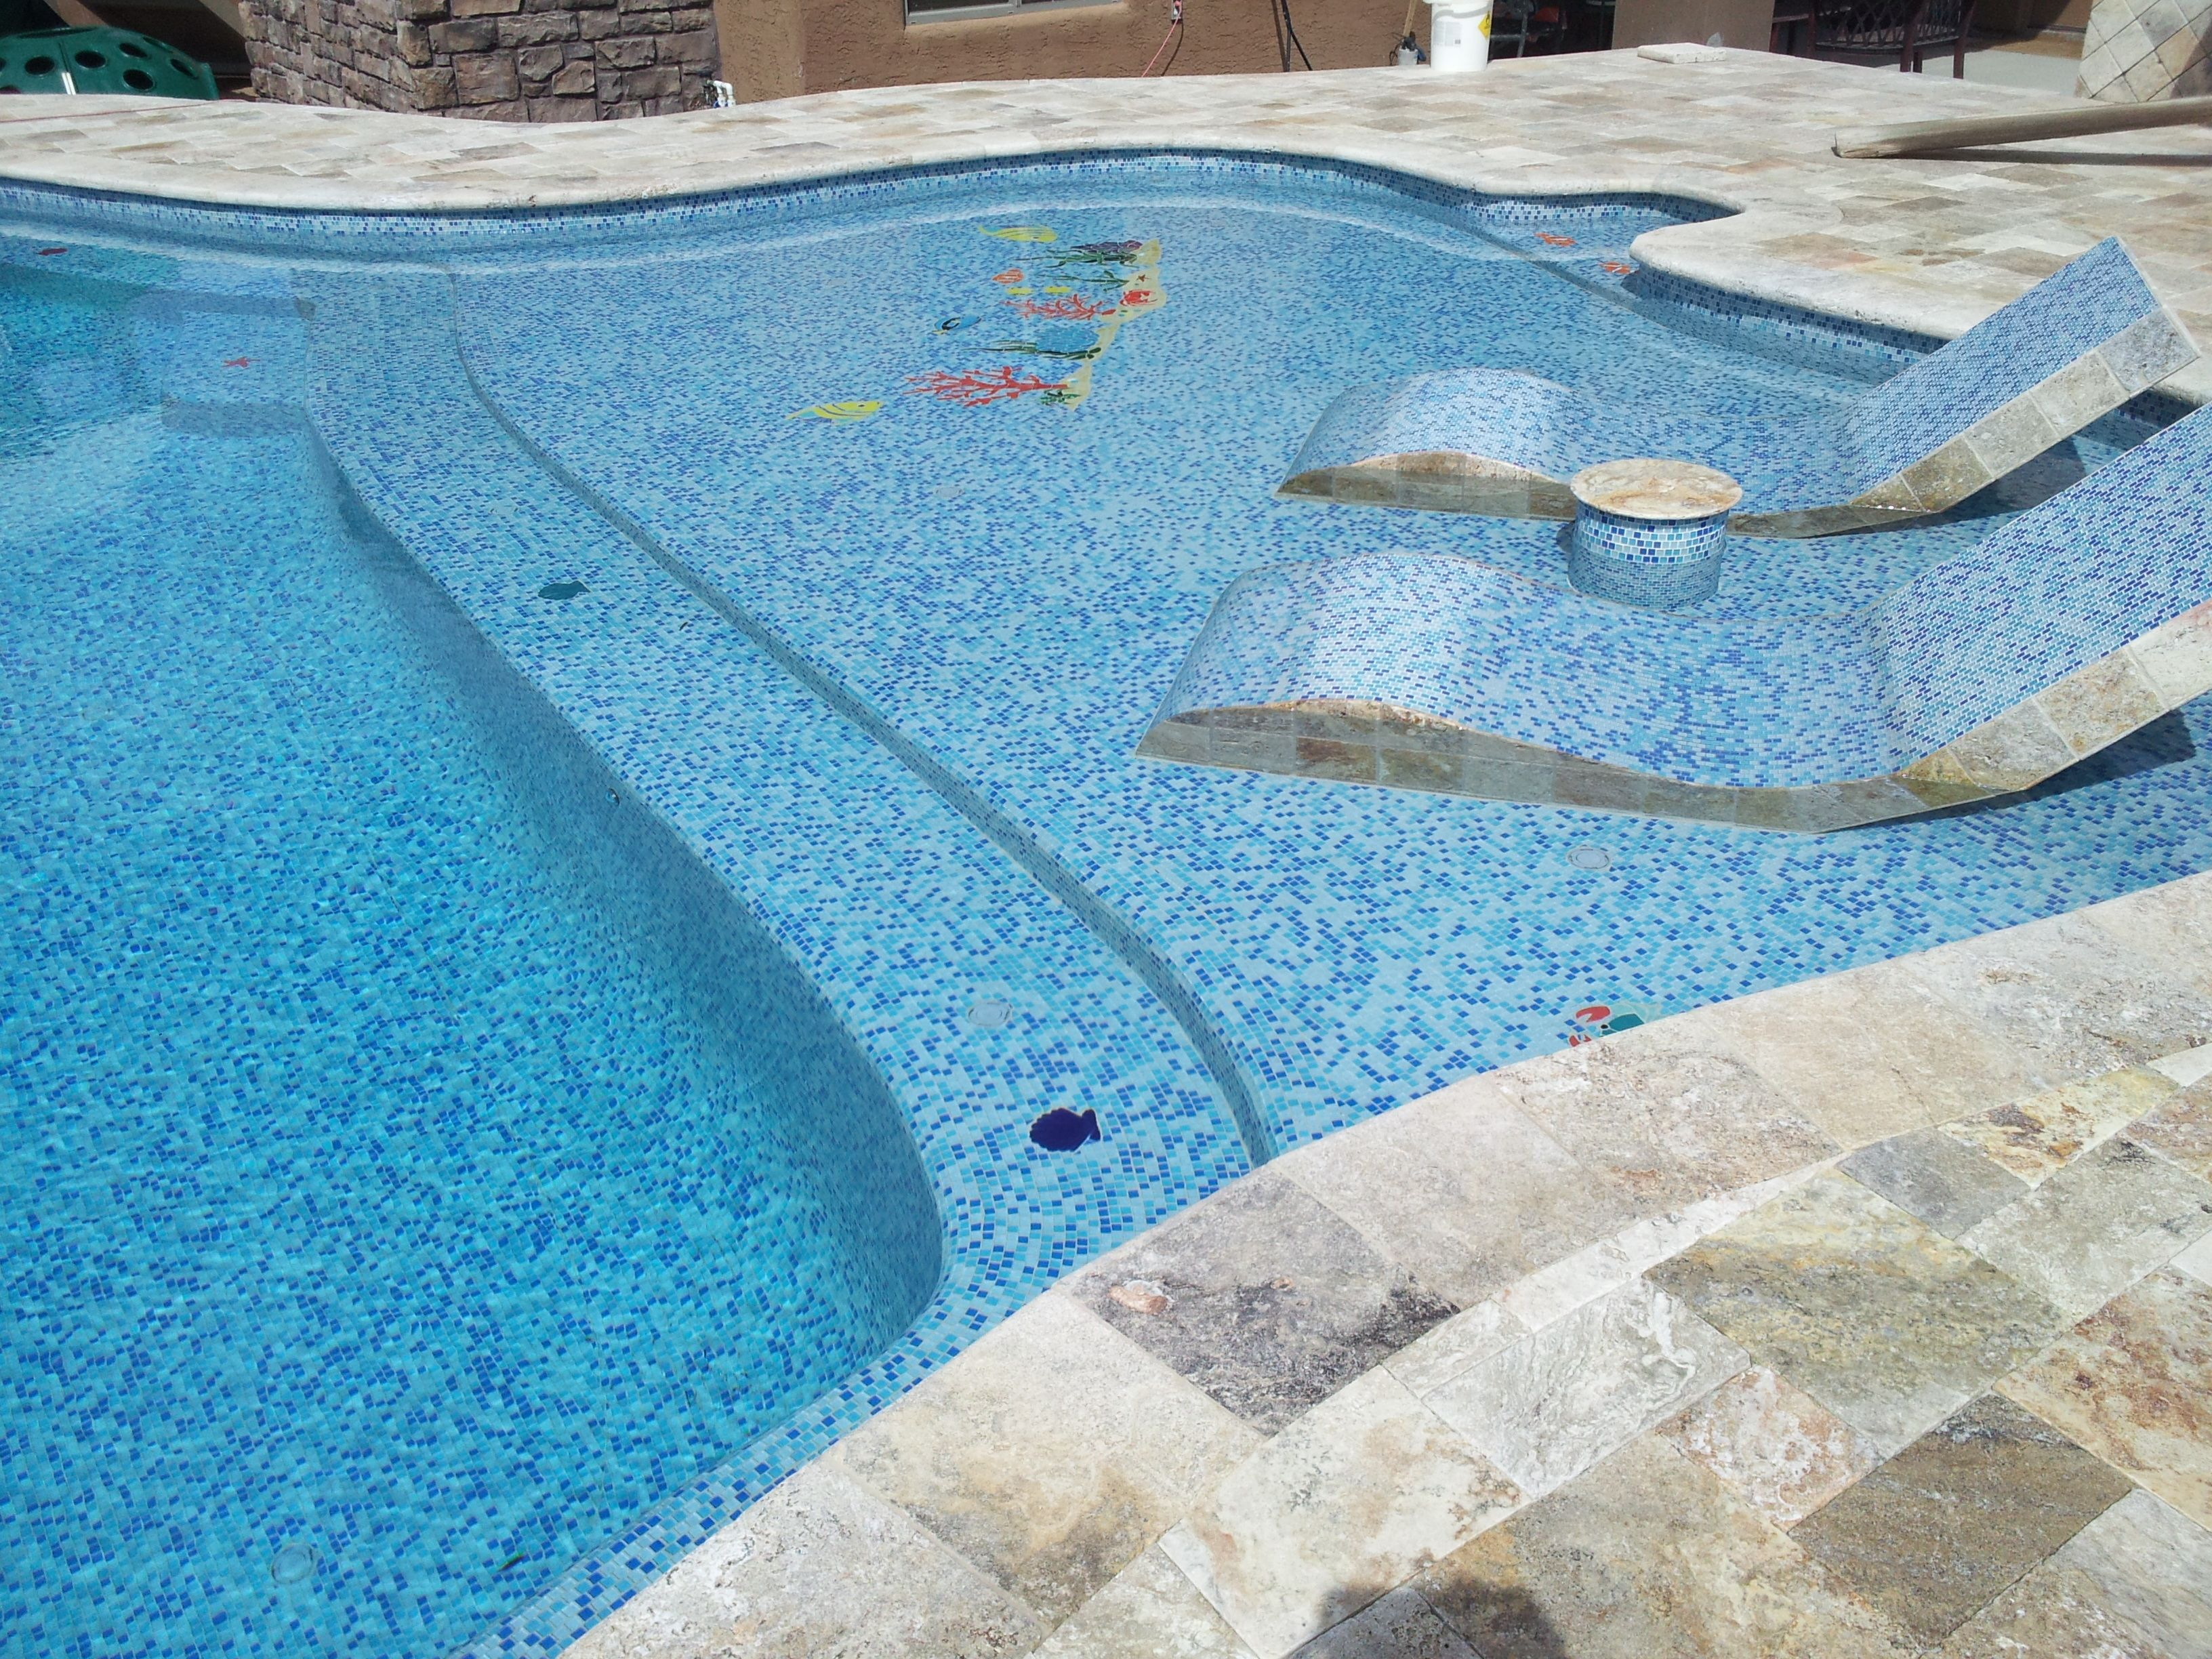 Travertine deck with pool jewelz glass tile interior and for Built in pools